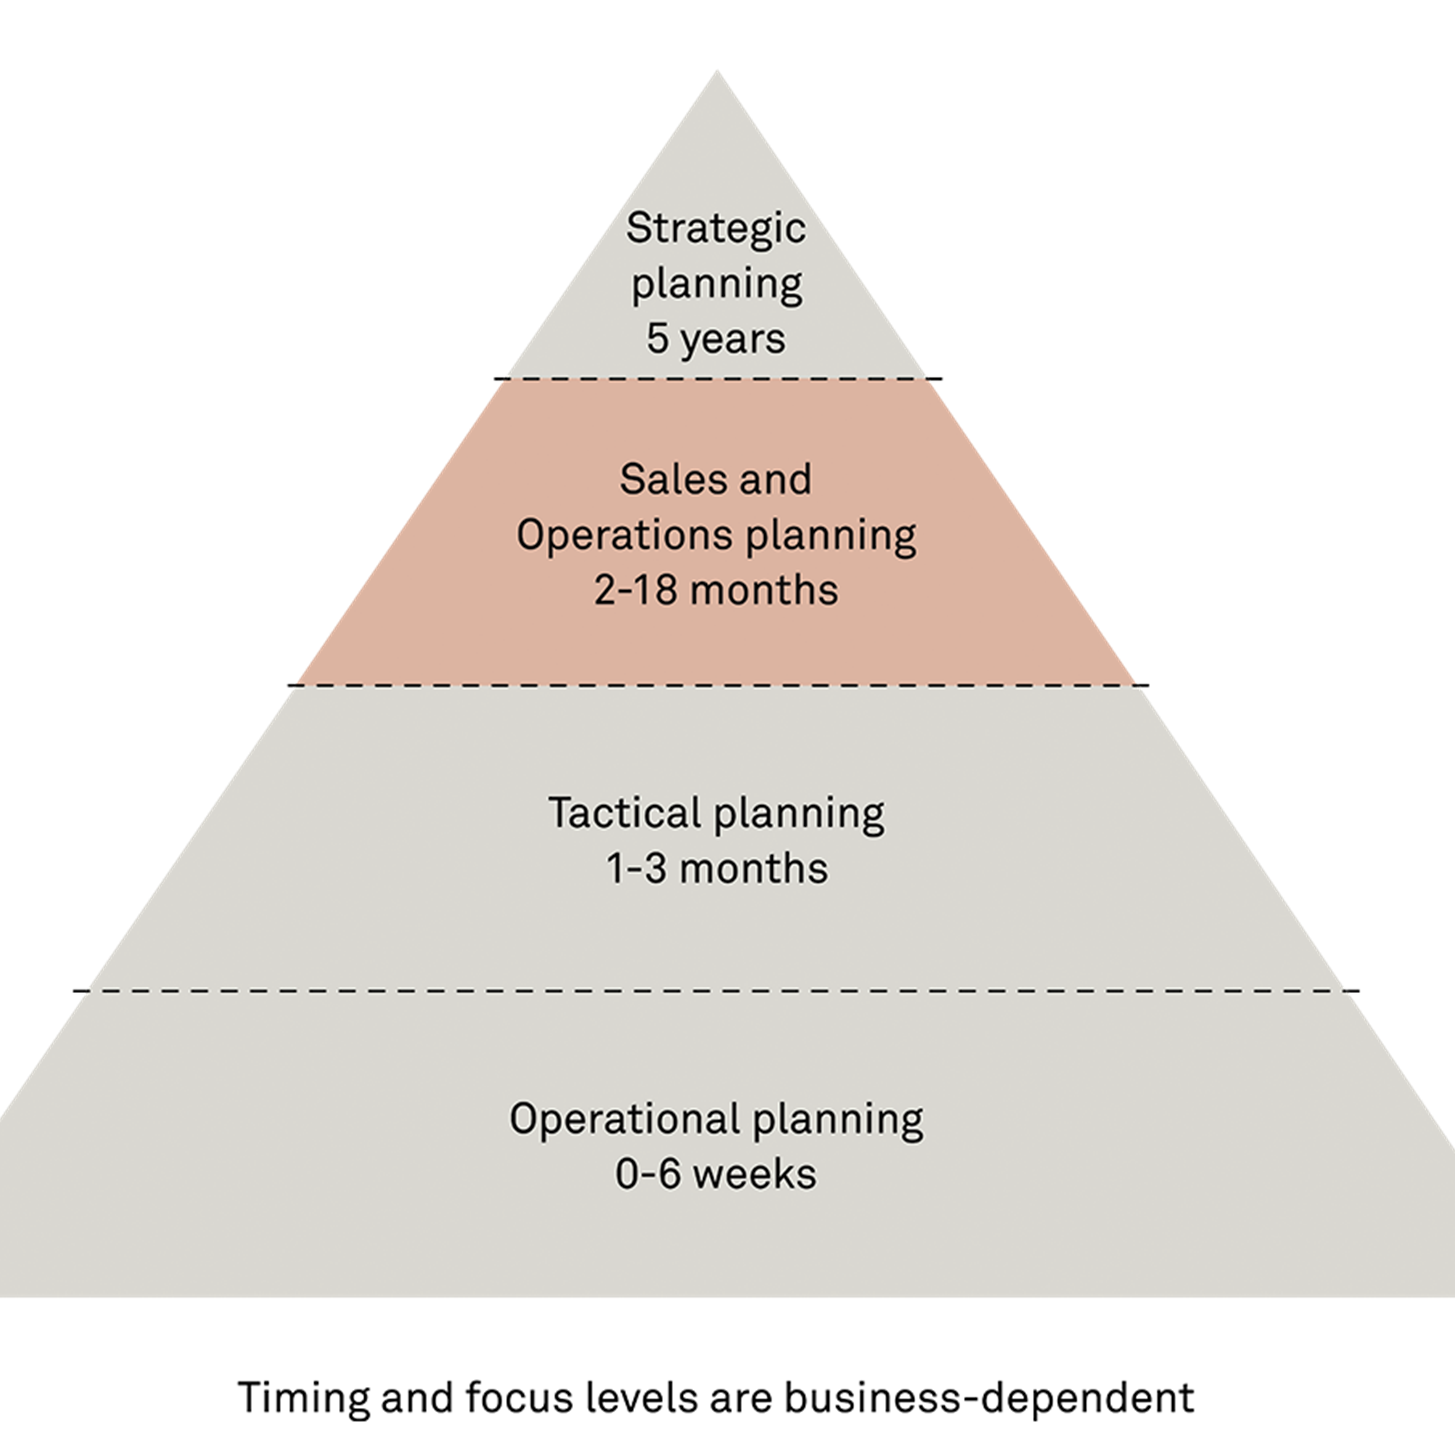 Timing and focus levels are business-dependent in integrated business planning